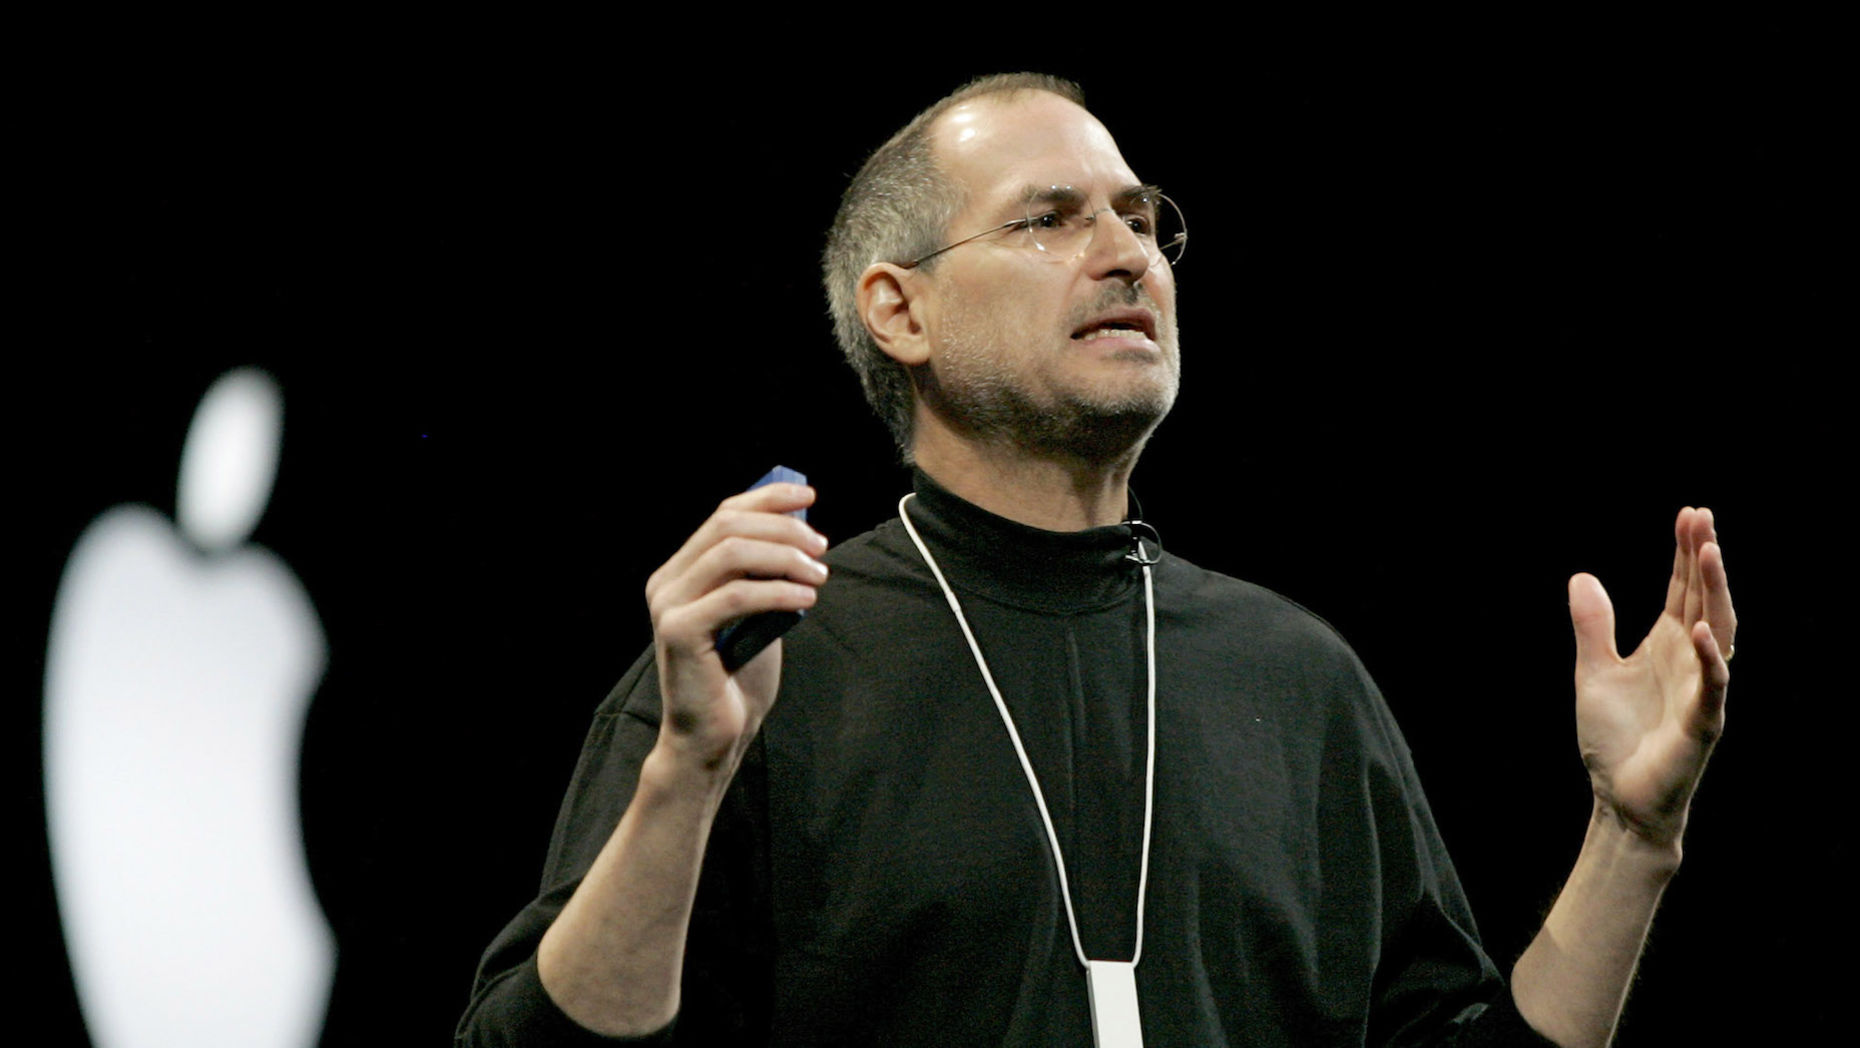 Apple co-founder Steve Jobs. Photo by Bloomberg.